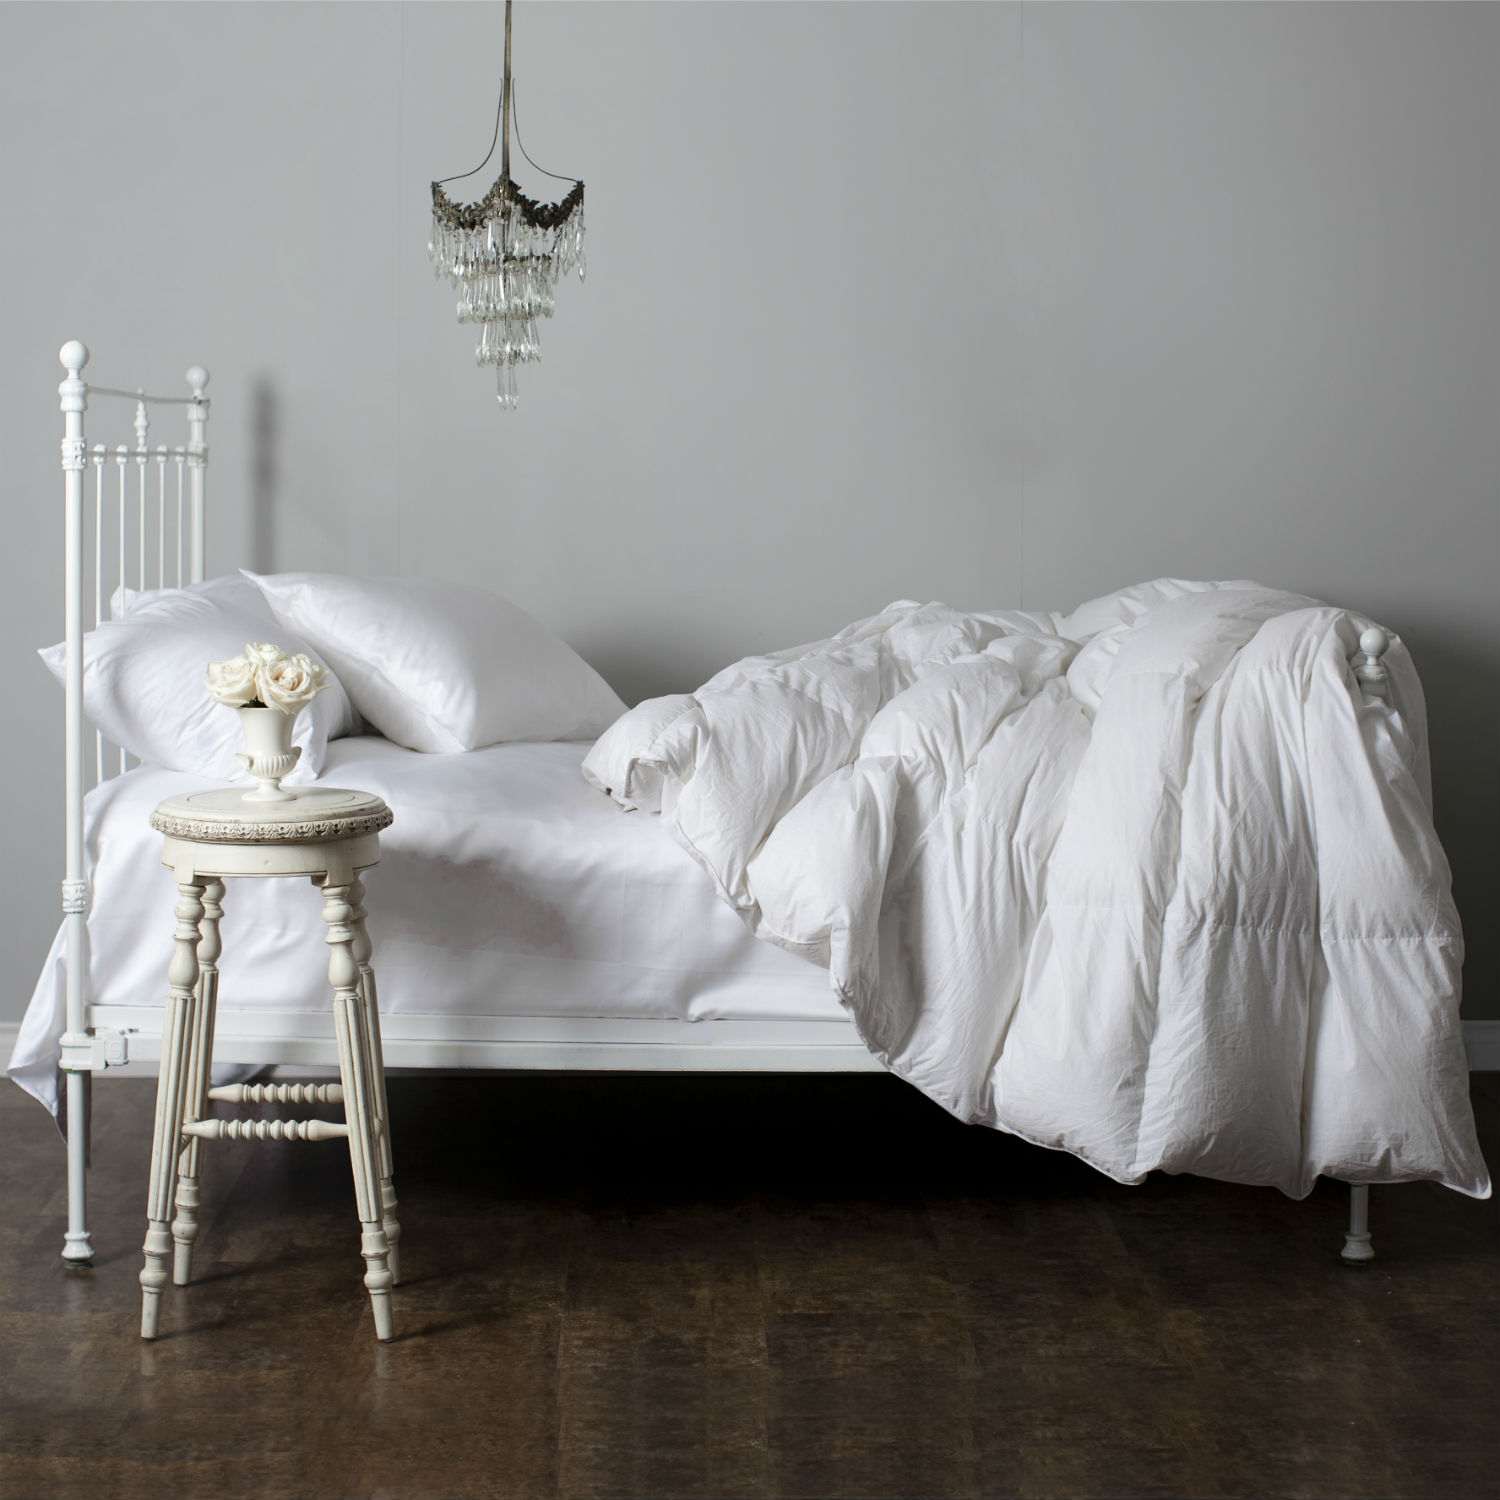 LaJord Duvet/Down Comforter & Pillows by St. Geneve Luxury Bedding